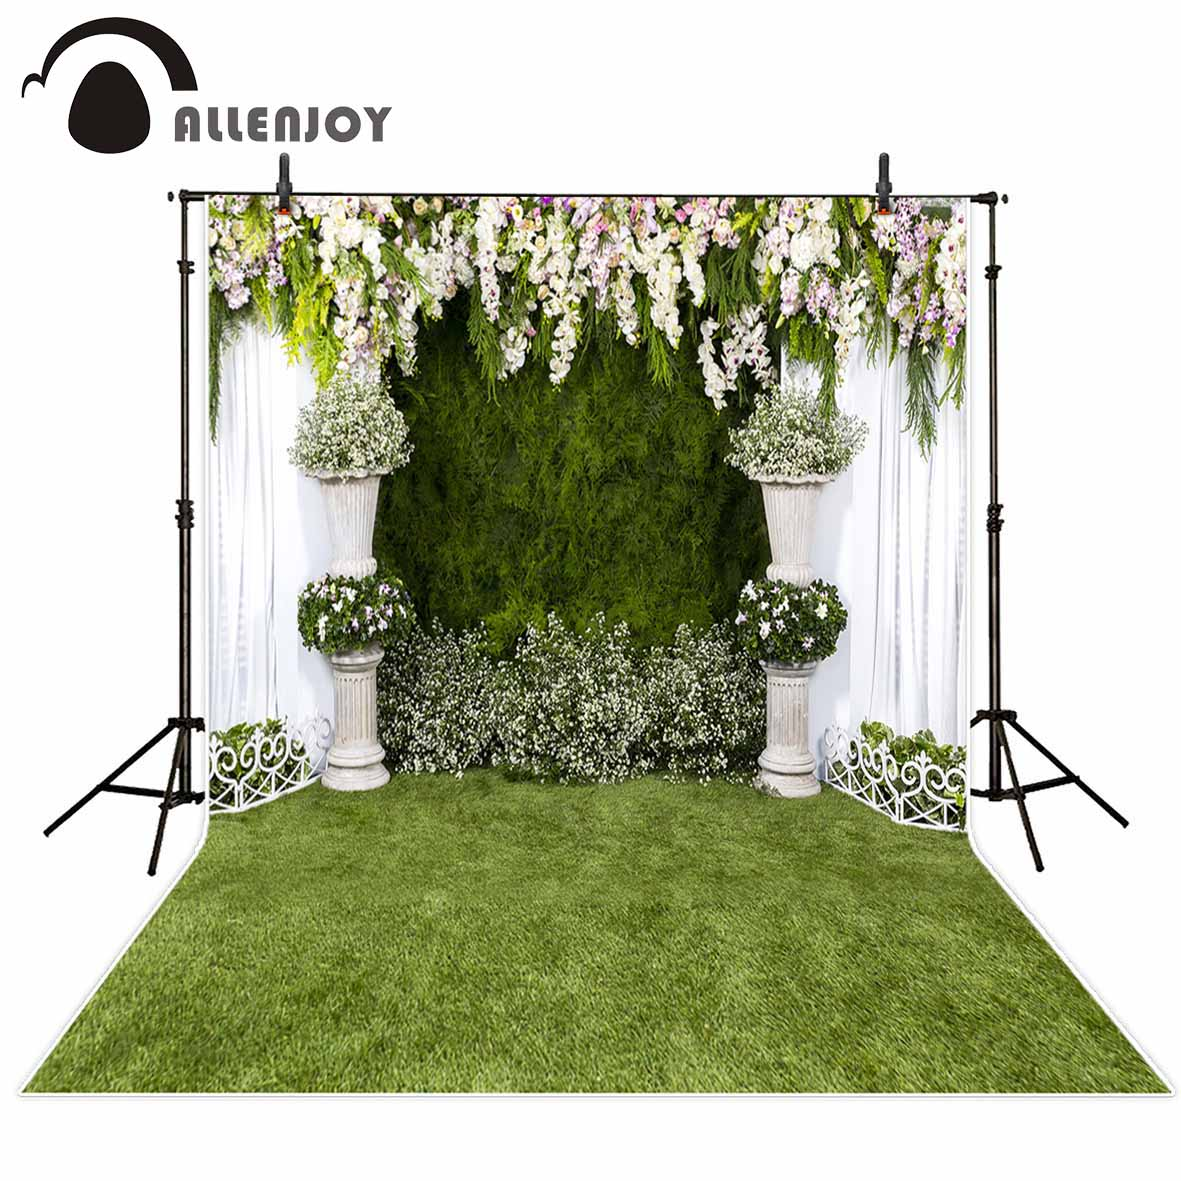 Allenjoy photography background Garden Plants Flowers Wedding Celebration romantic background photo studio camera fotografica